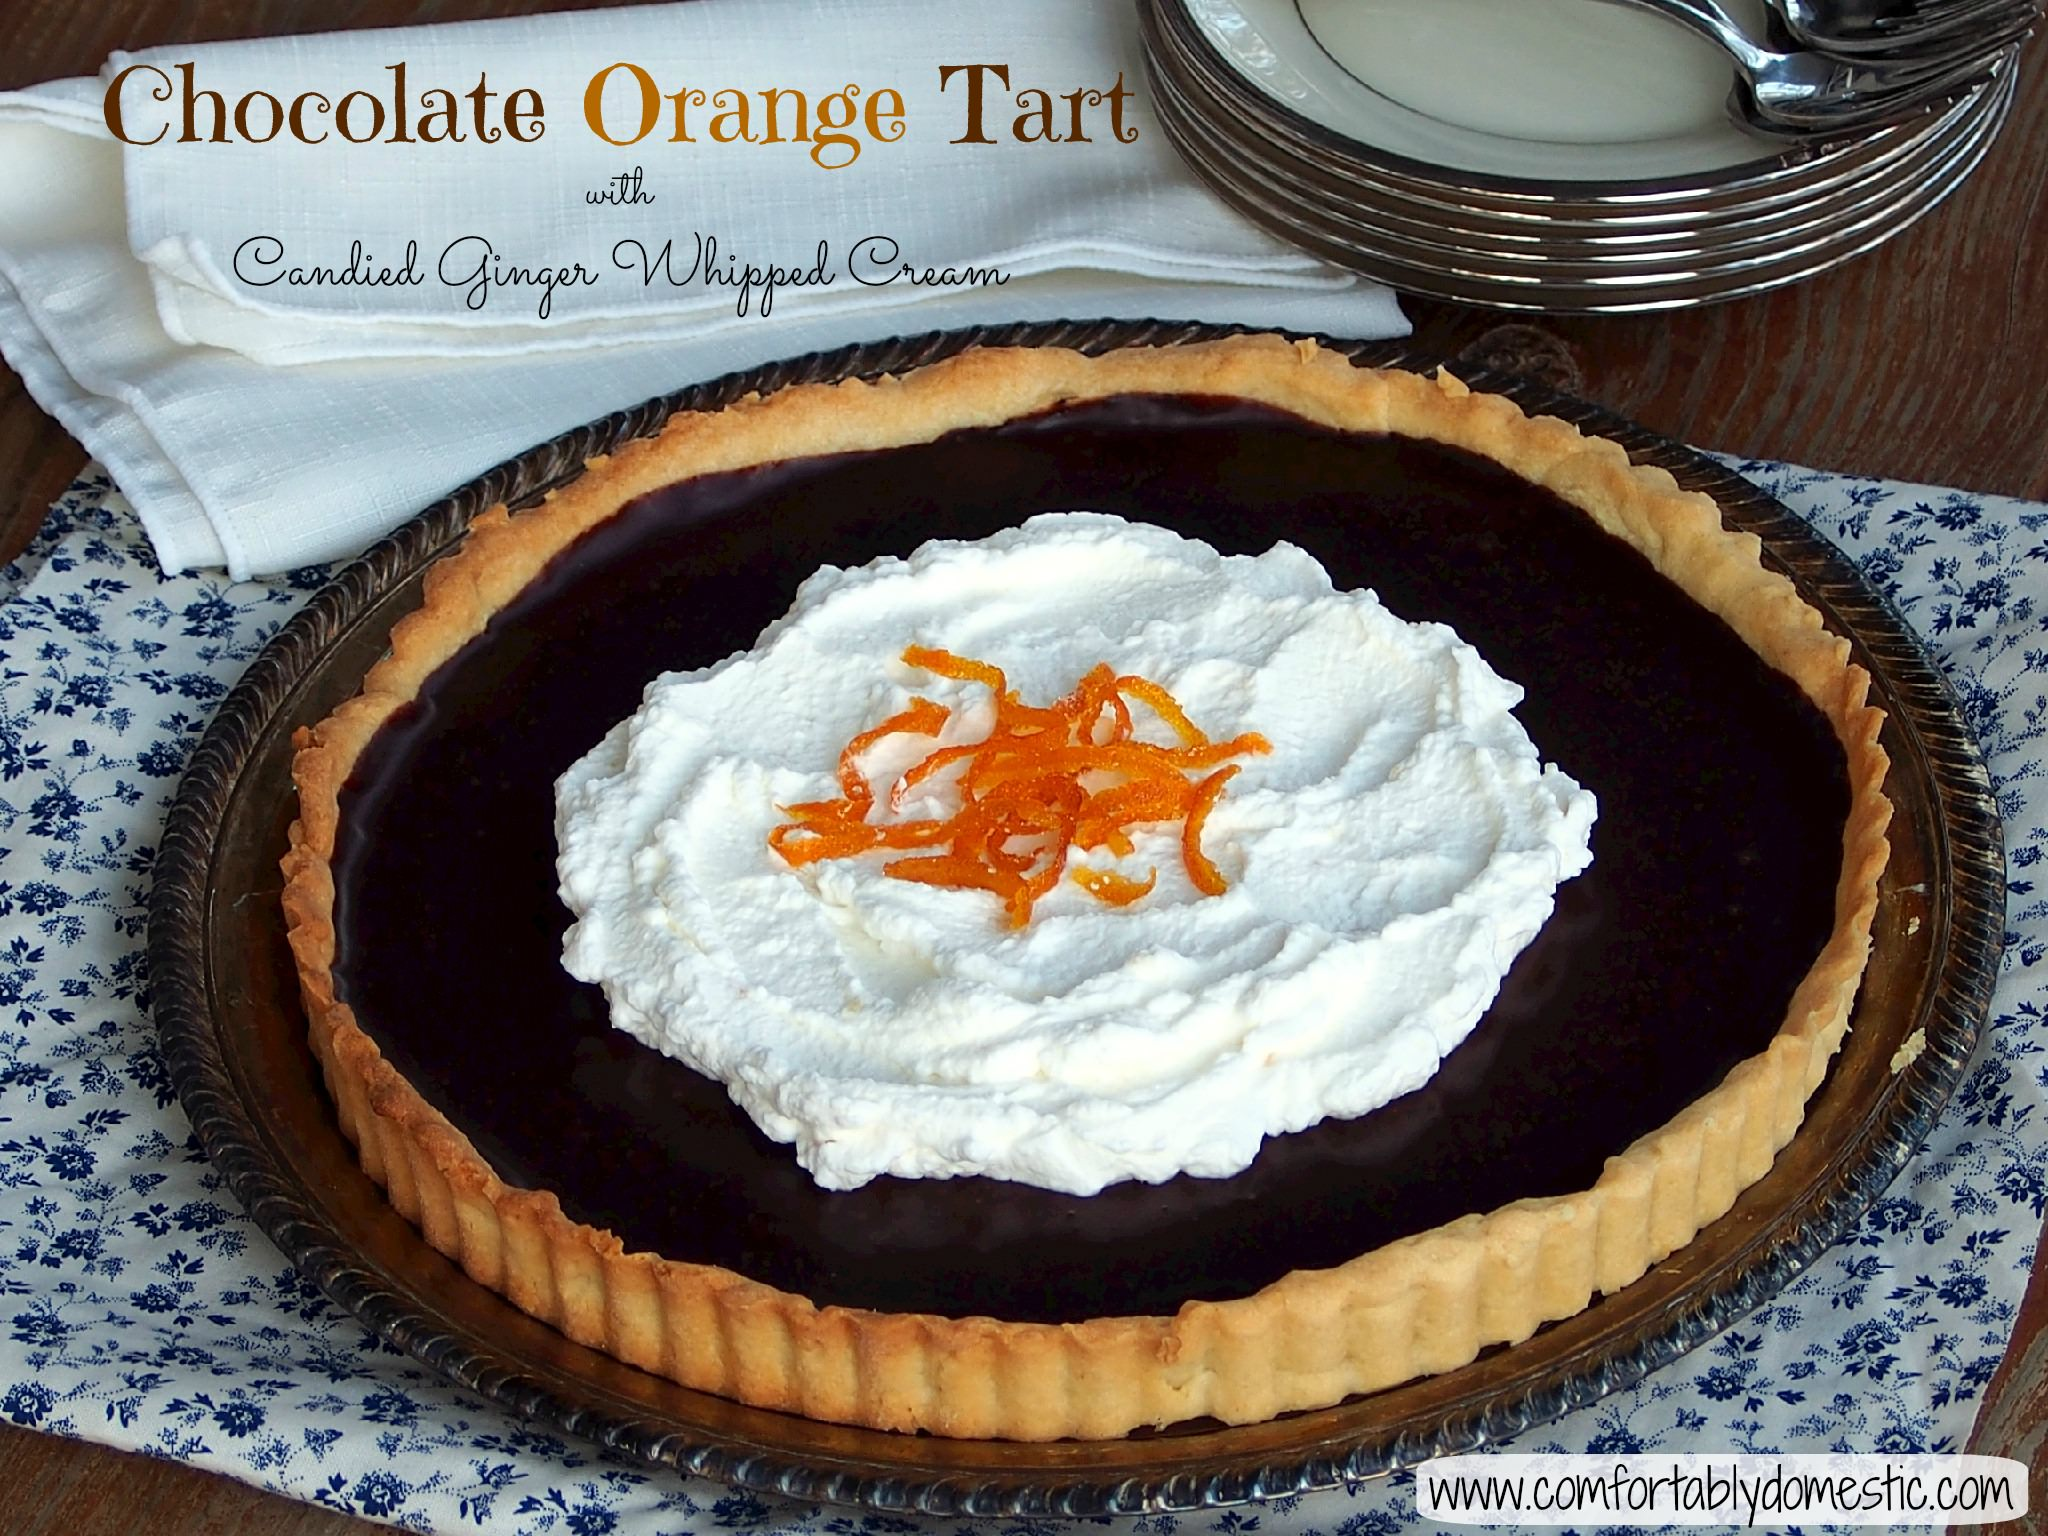 Chocolate Orange Tart with Gingered Whipped Cream and Candied Orange Peel | ComfortablyDomestic.com